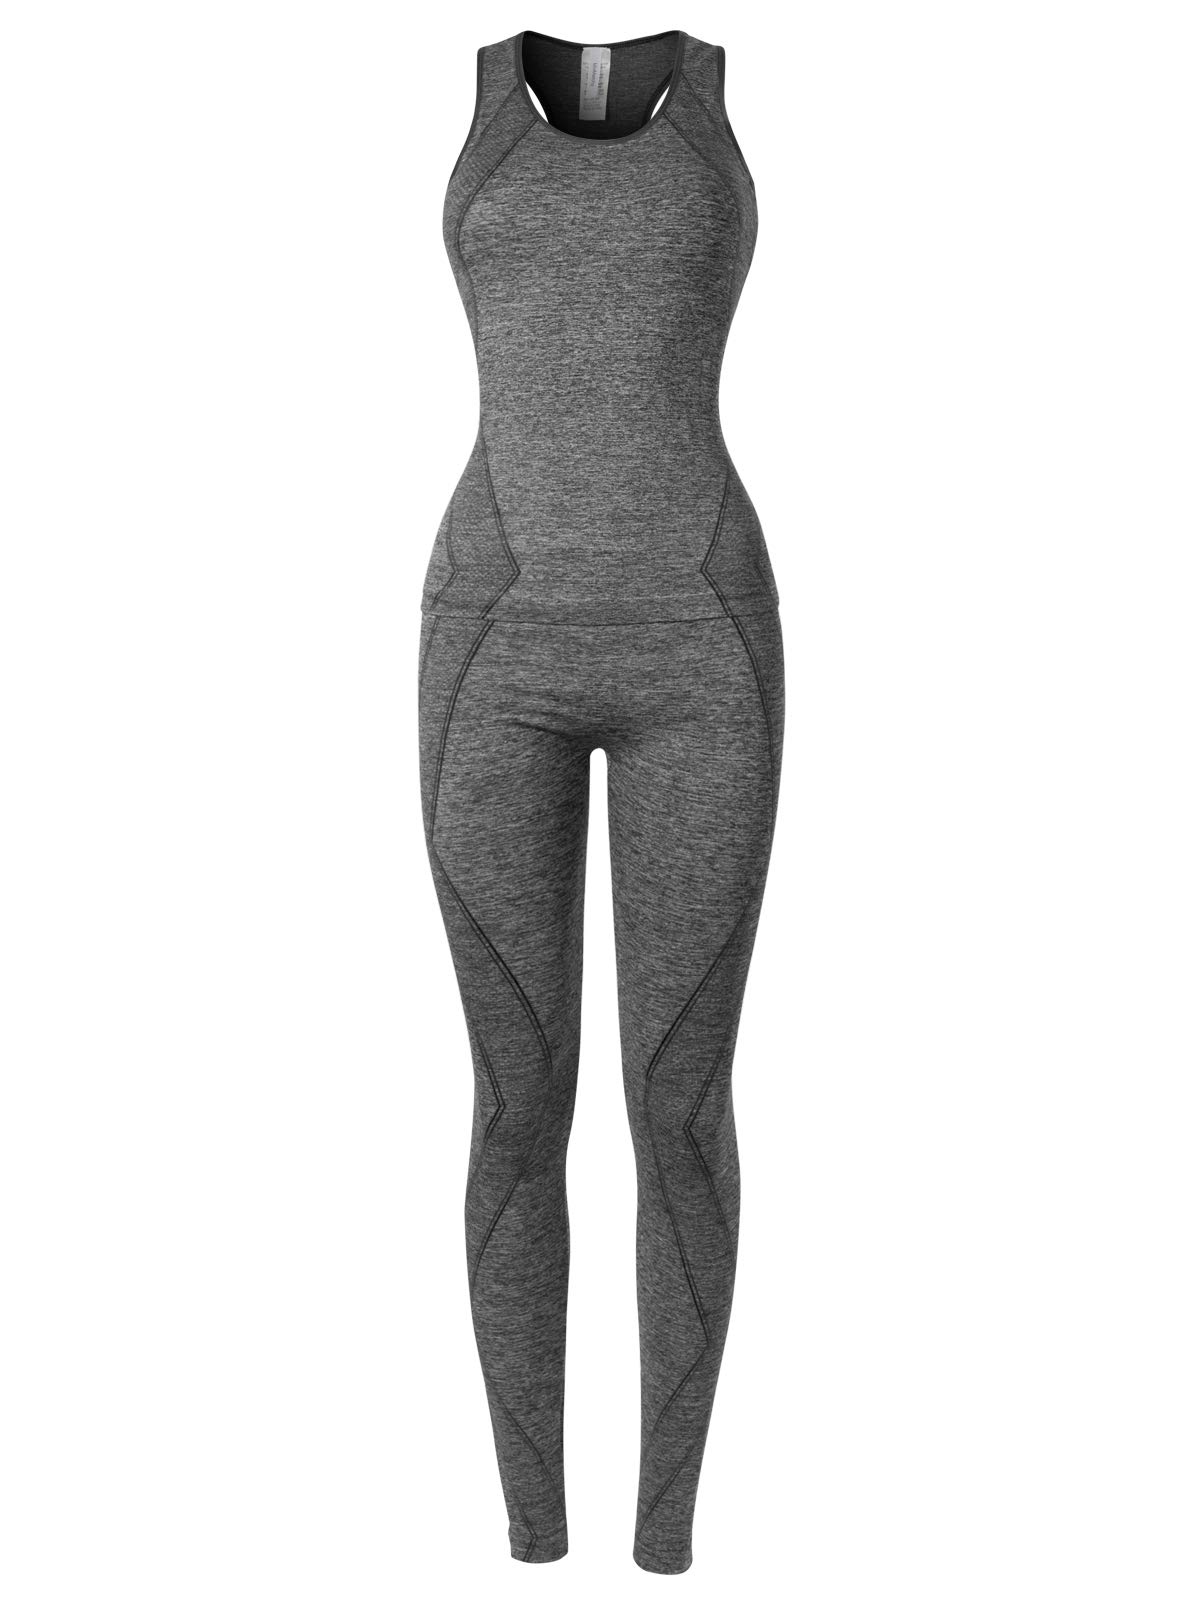 MixMatchy Women's Sports Gym Yoga Workout Activewear Sets Top & Leggings Set Grey/Black ONE by MixMatchy